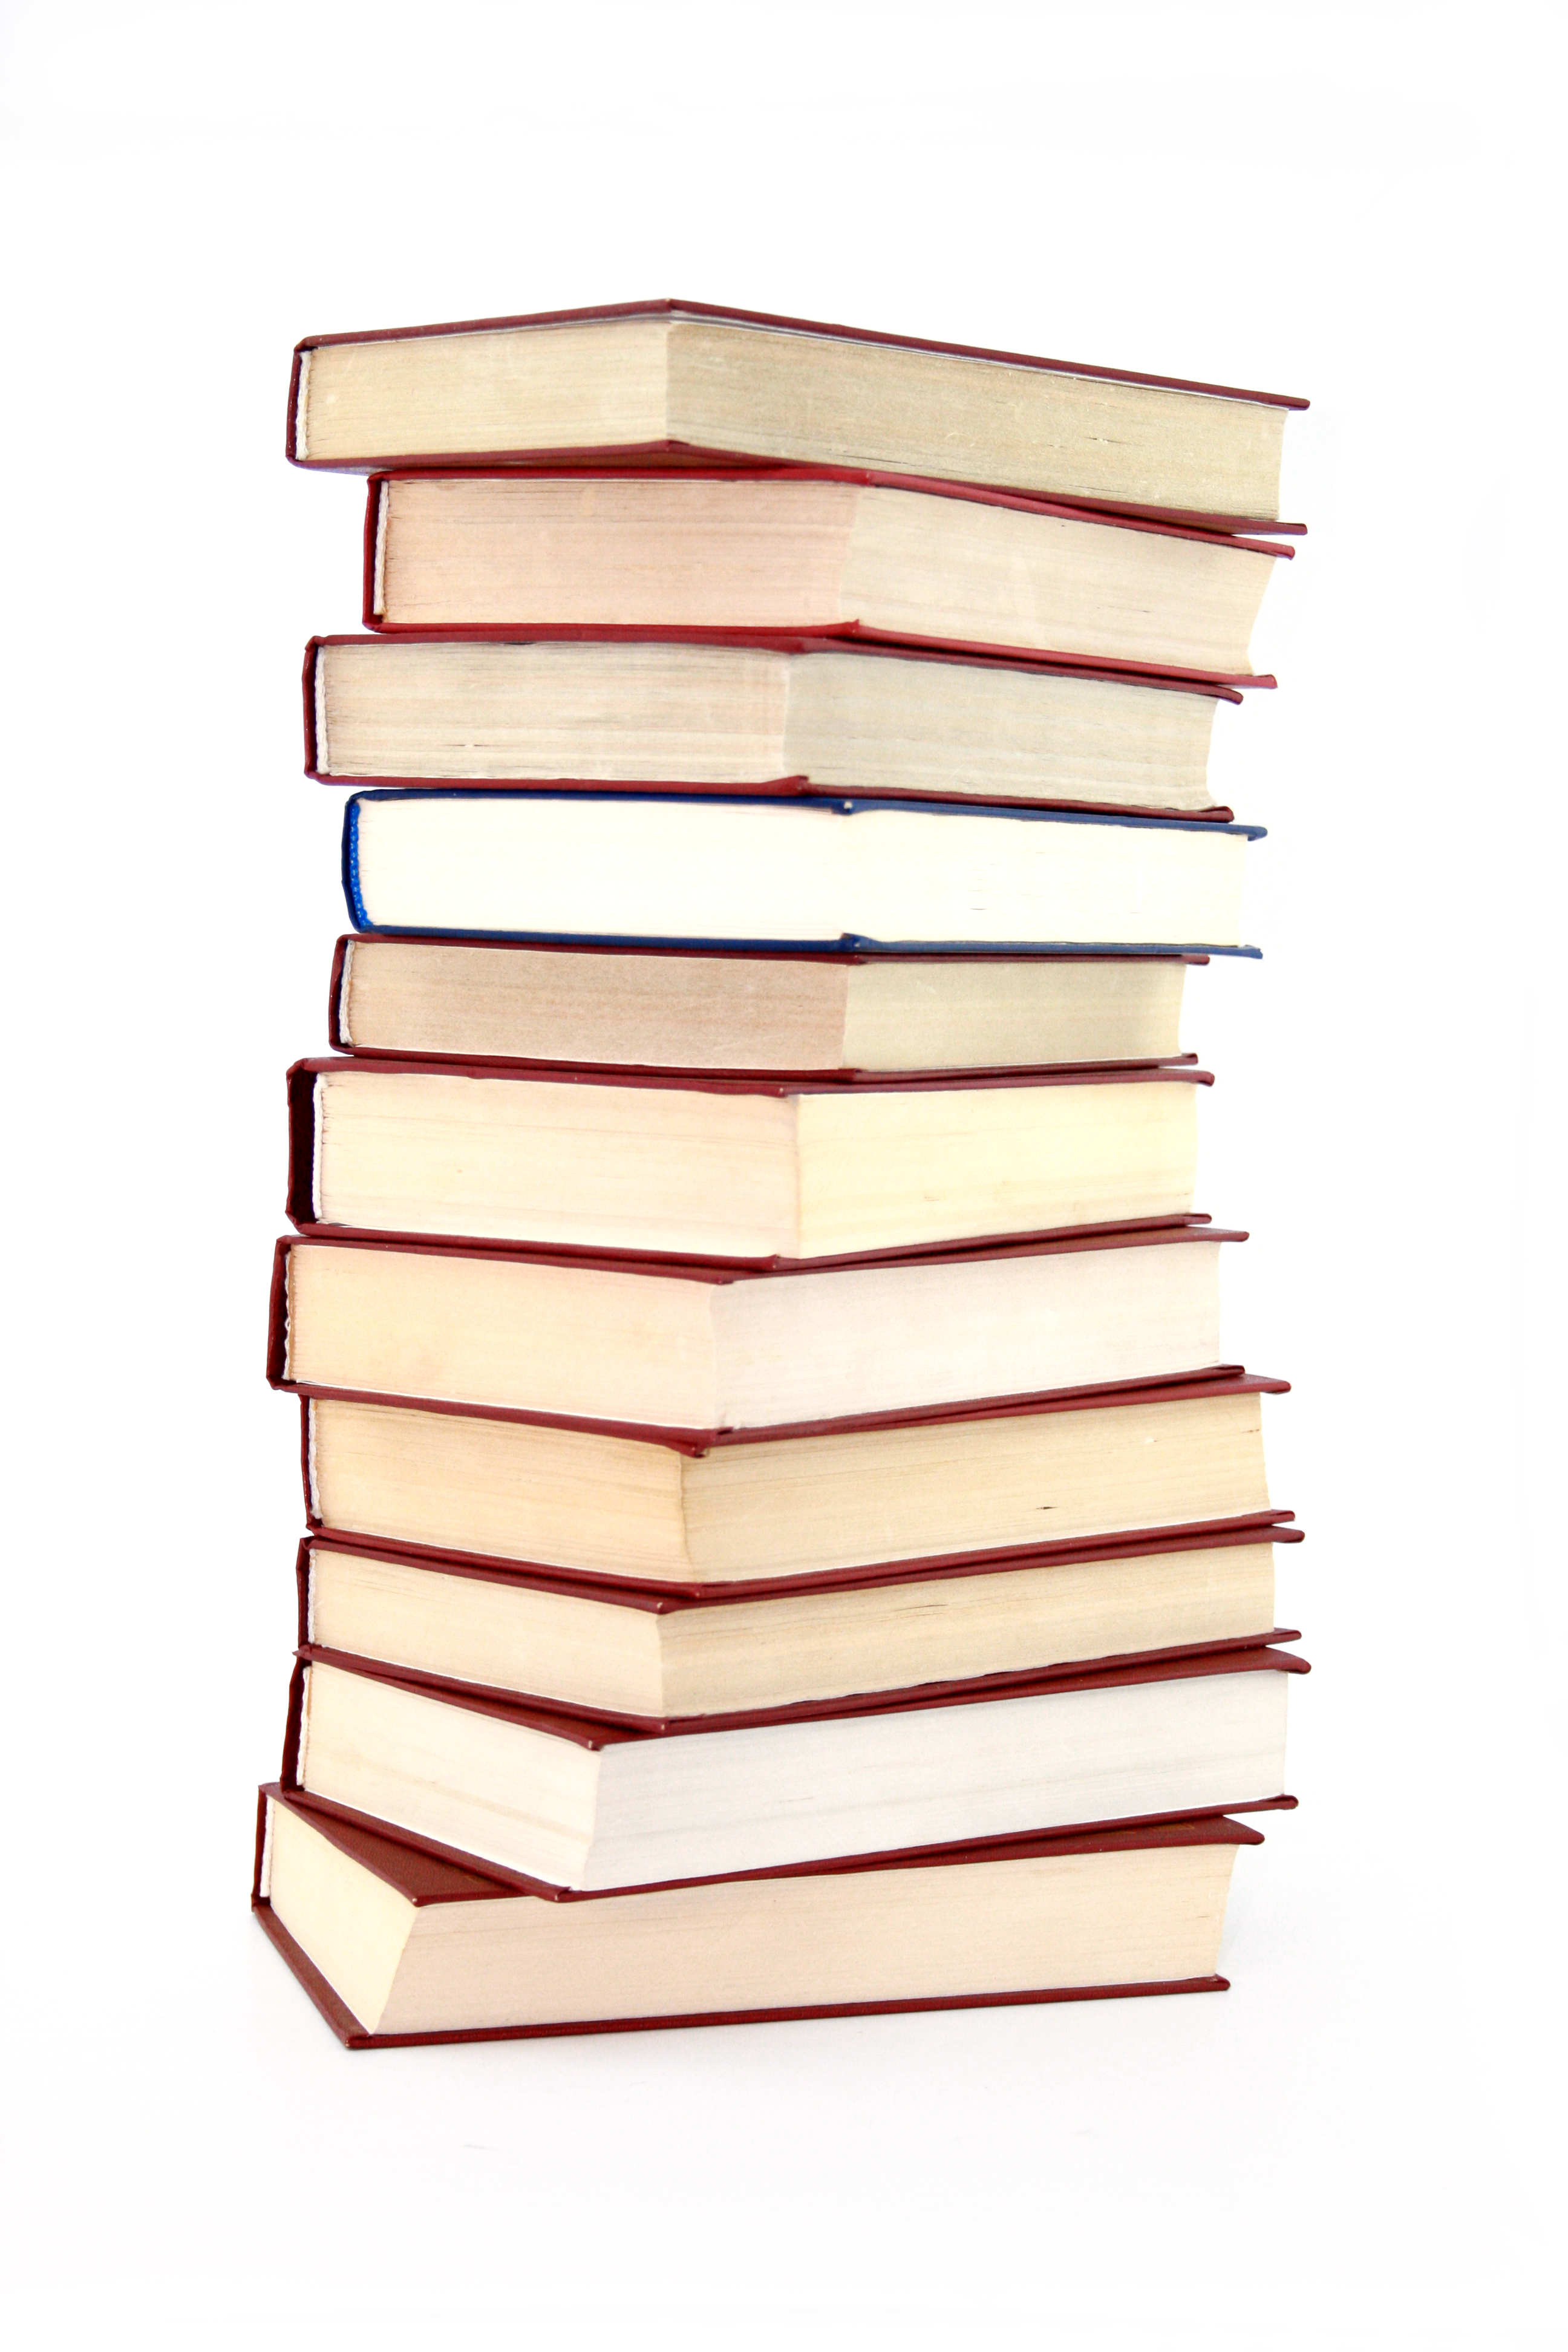 stack of books, Archive, Literacy, Text, Study, HQ Photo